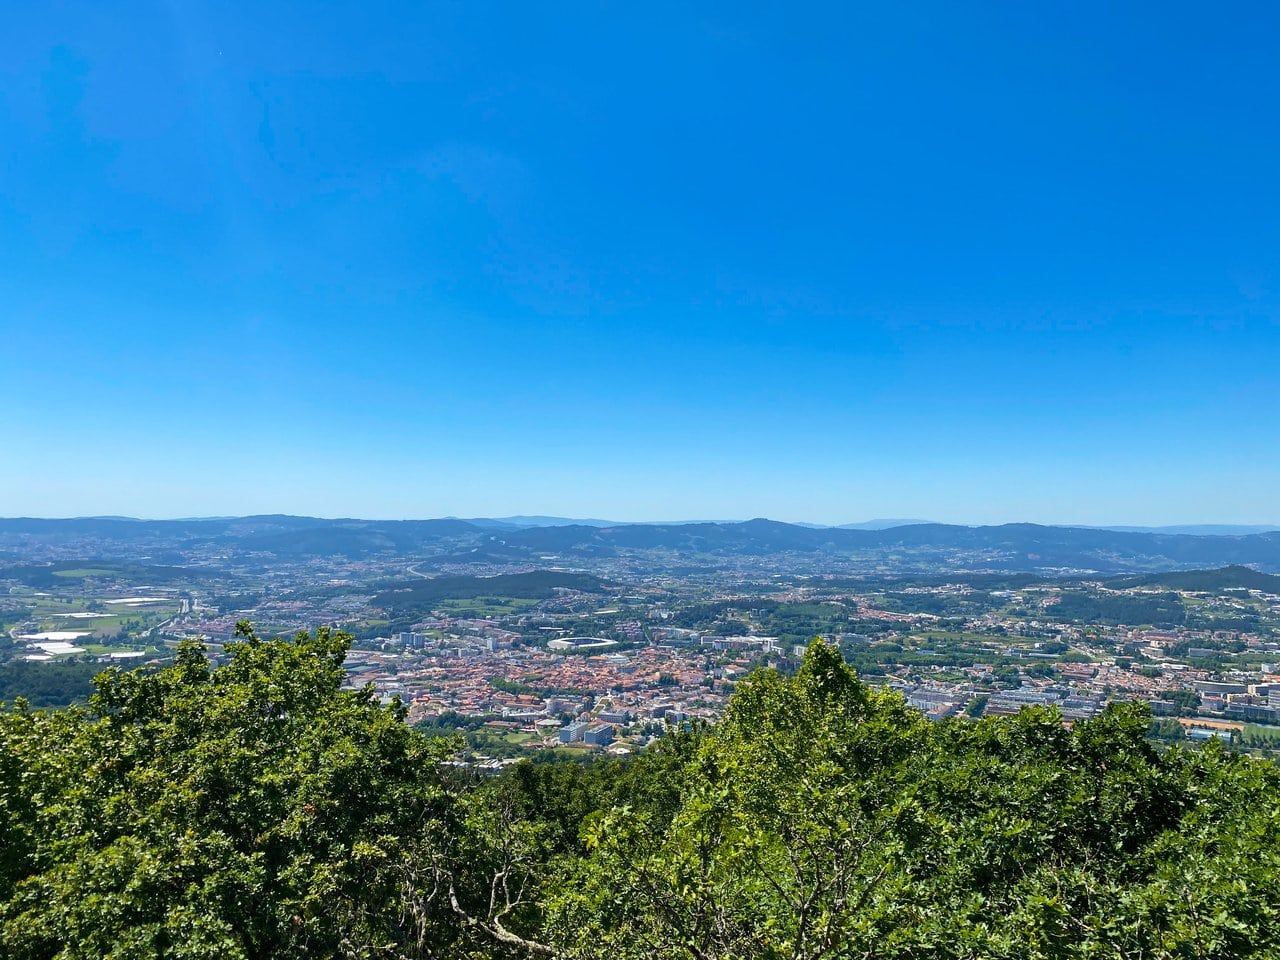 Views over a Portuguese city in summer